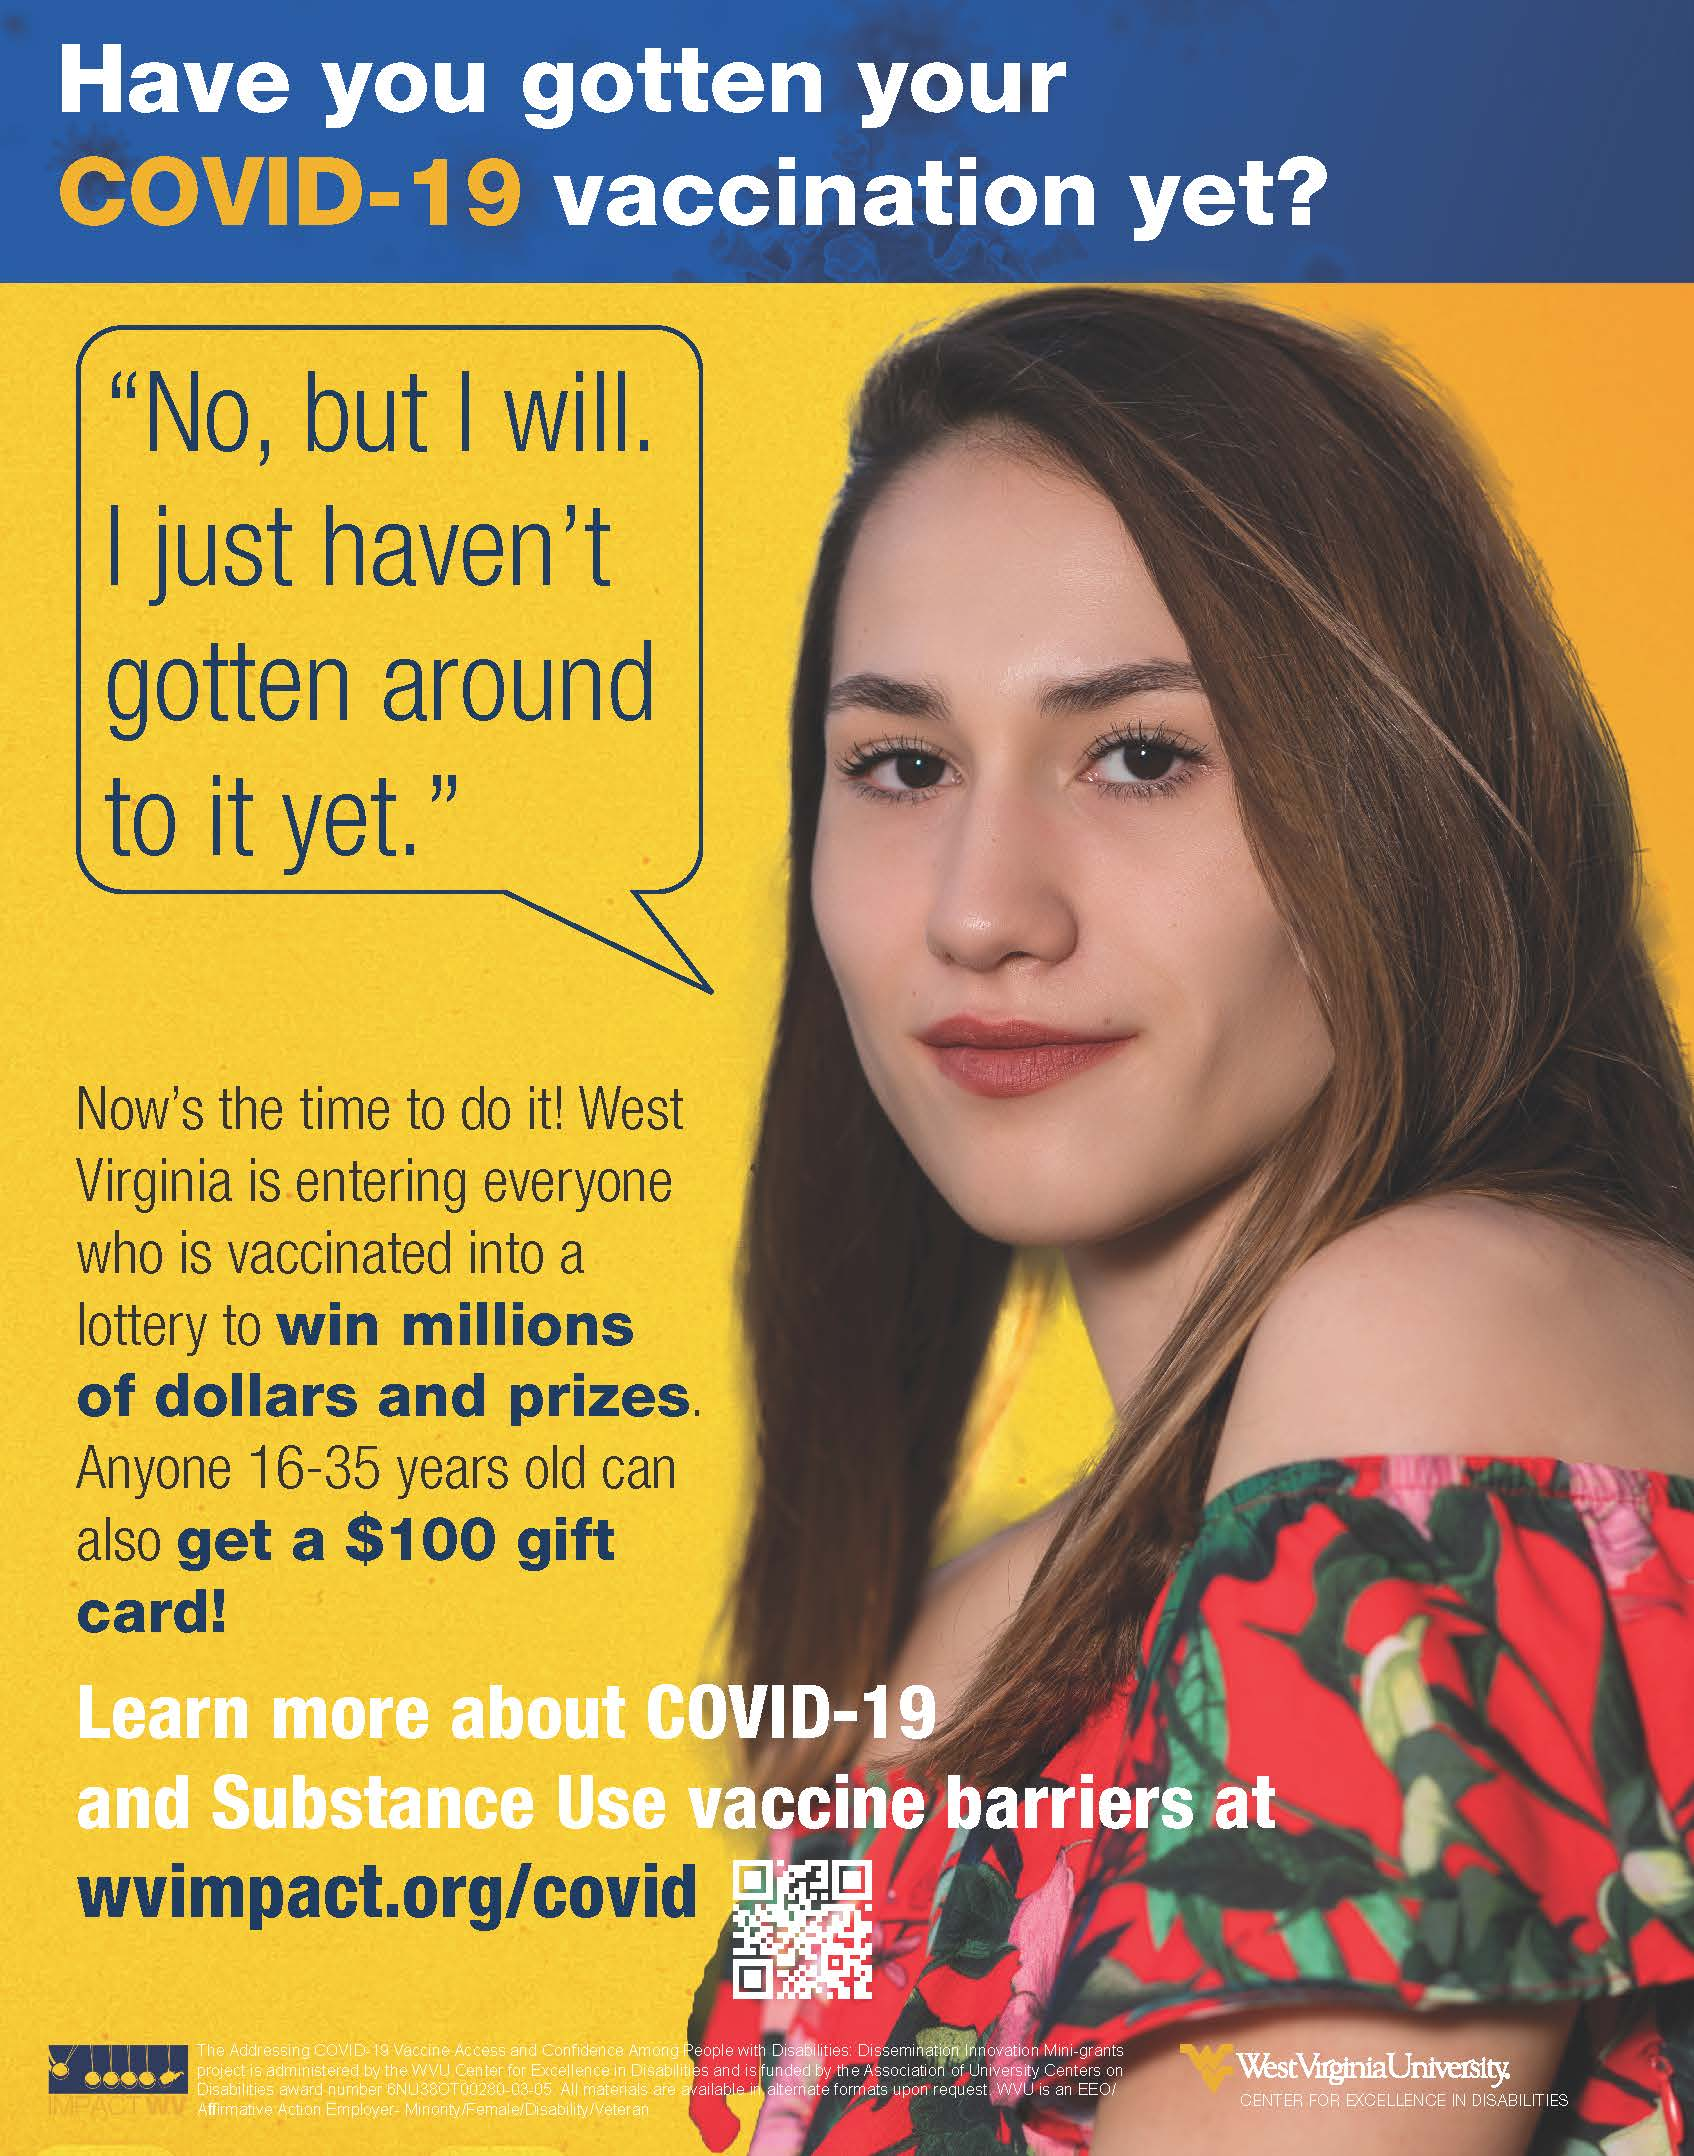 an image with the win millions of dollars in prizes text featuring an caucasion woman